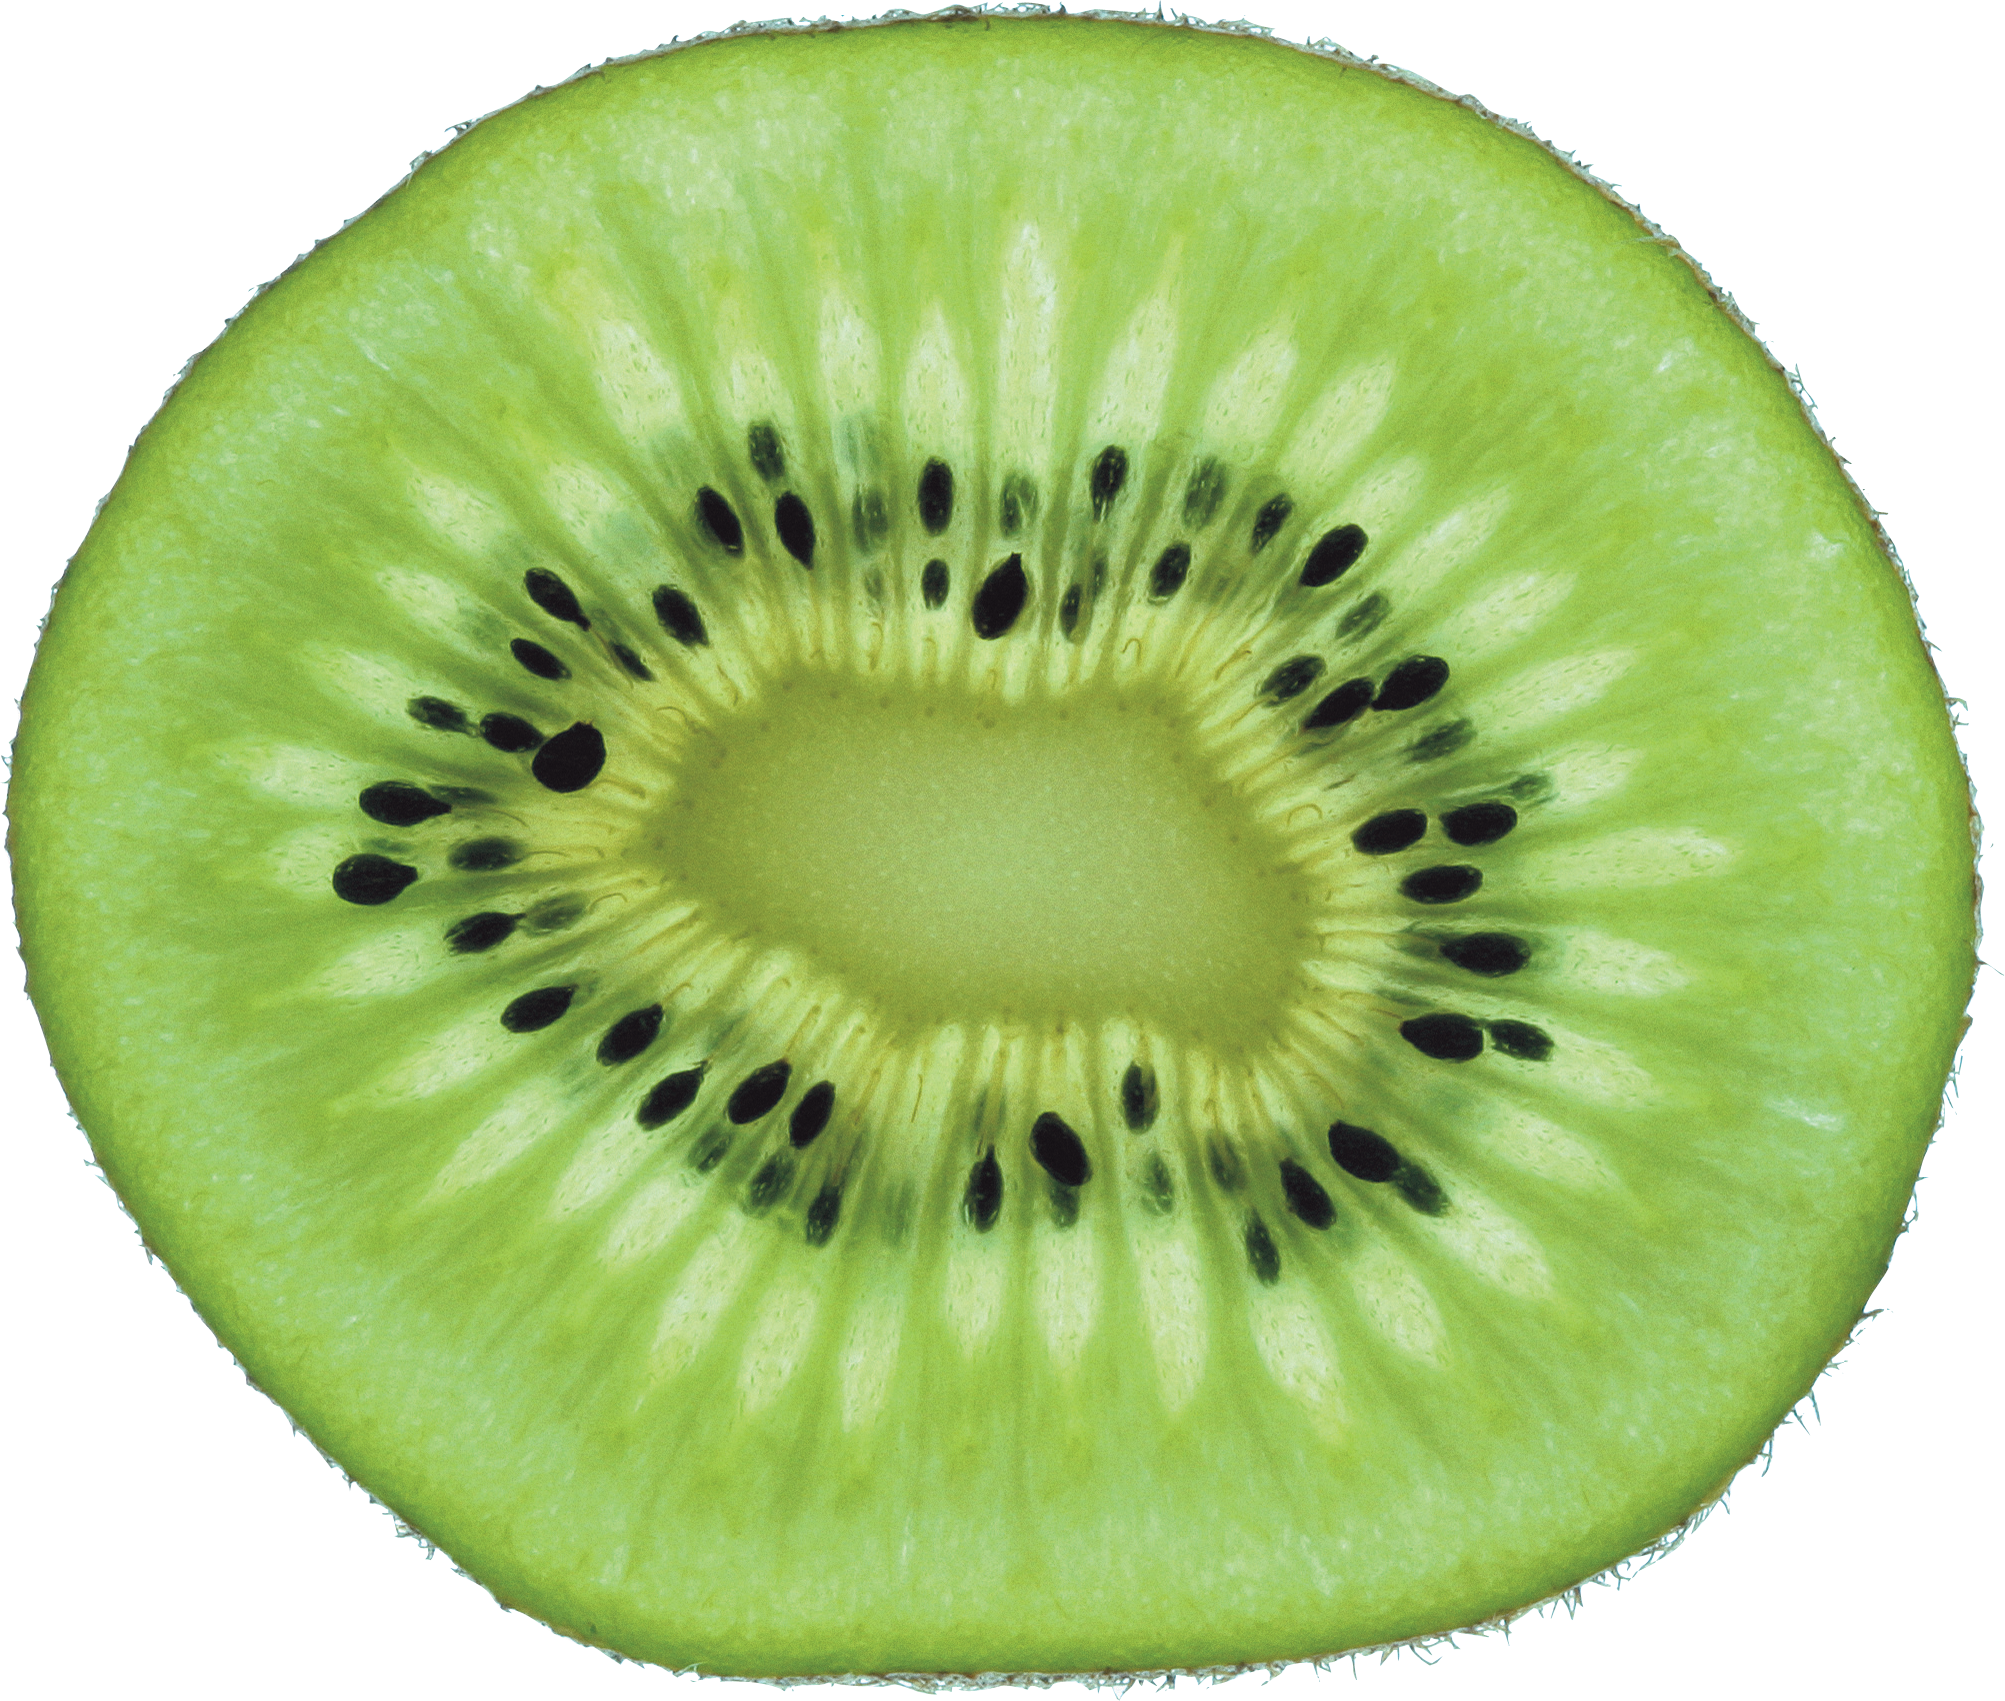 Green cutted kiwi PNG image - Kiwi PNG